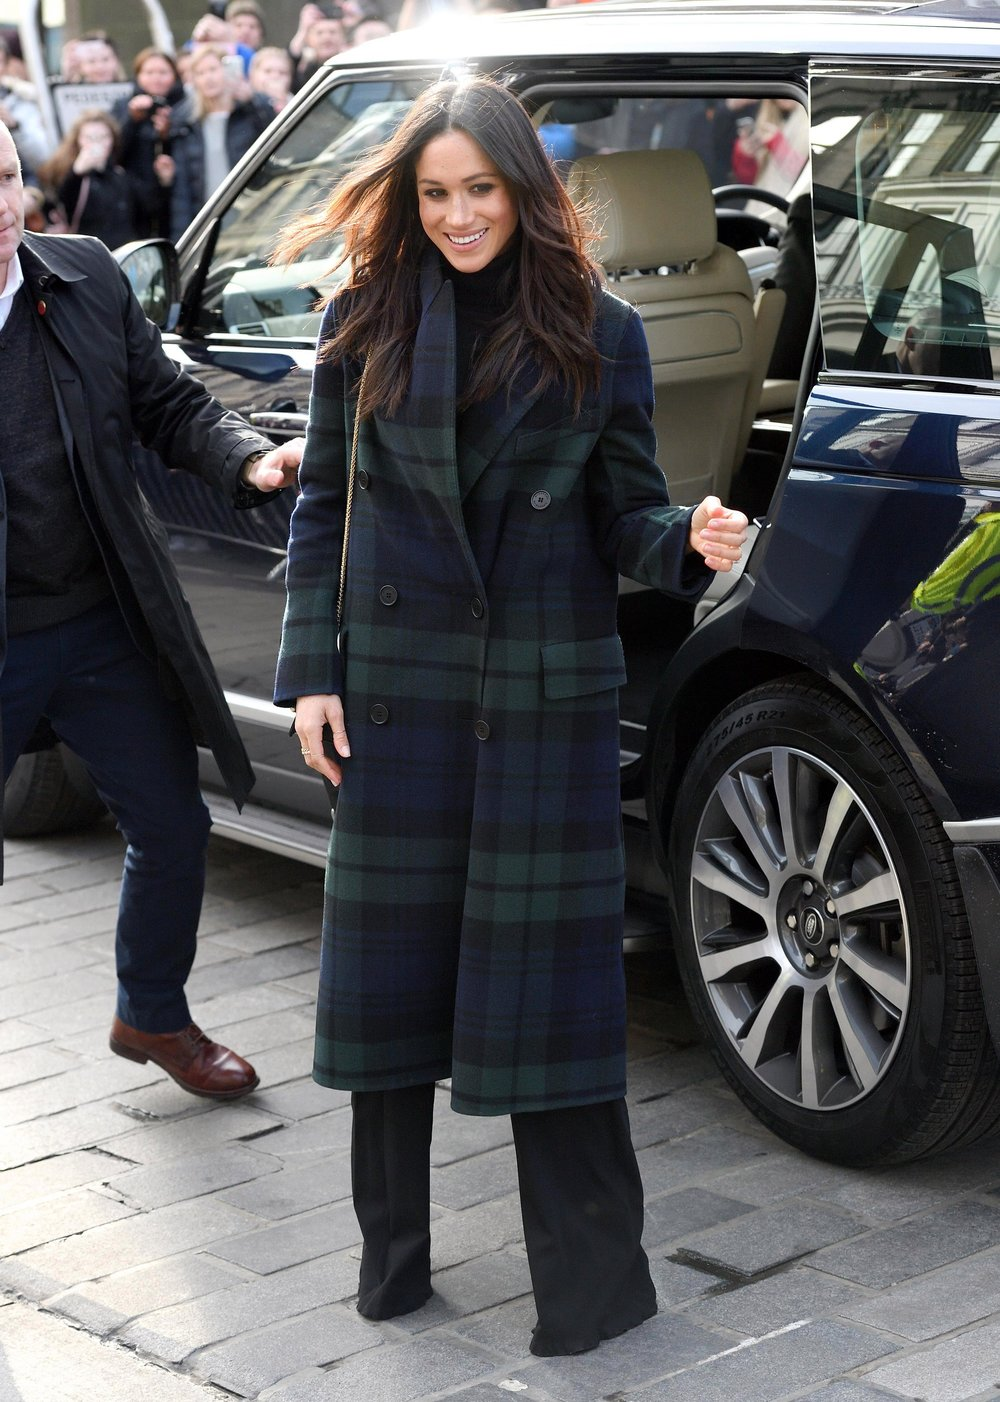 Meghan Markle wearing traditional Burberry tartan plaid on visit to Edinburgh Scotland.